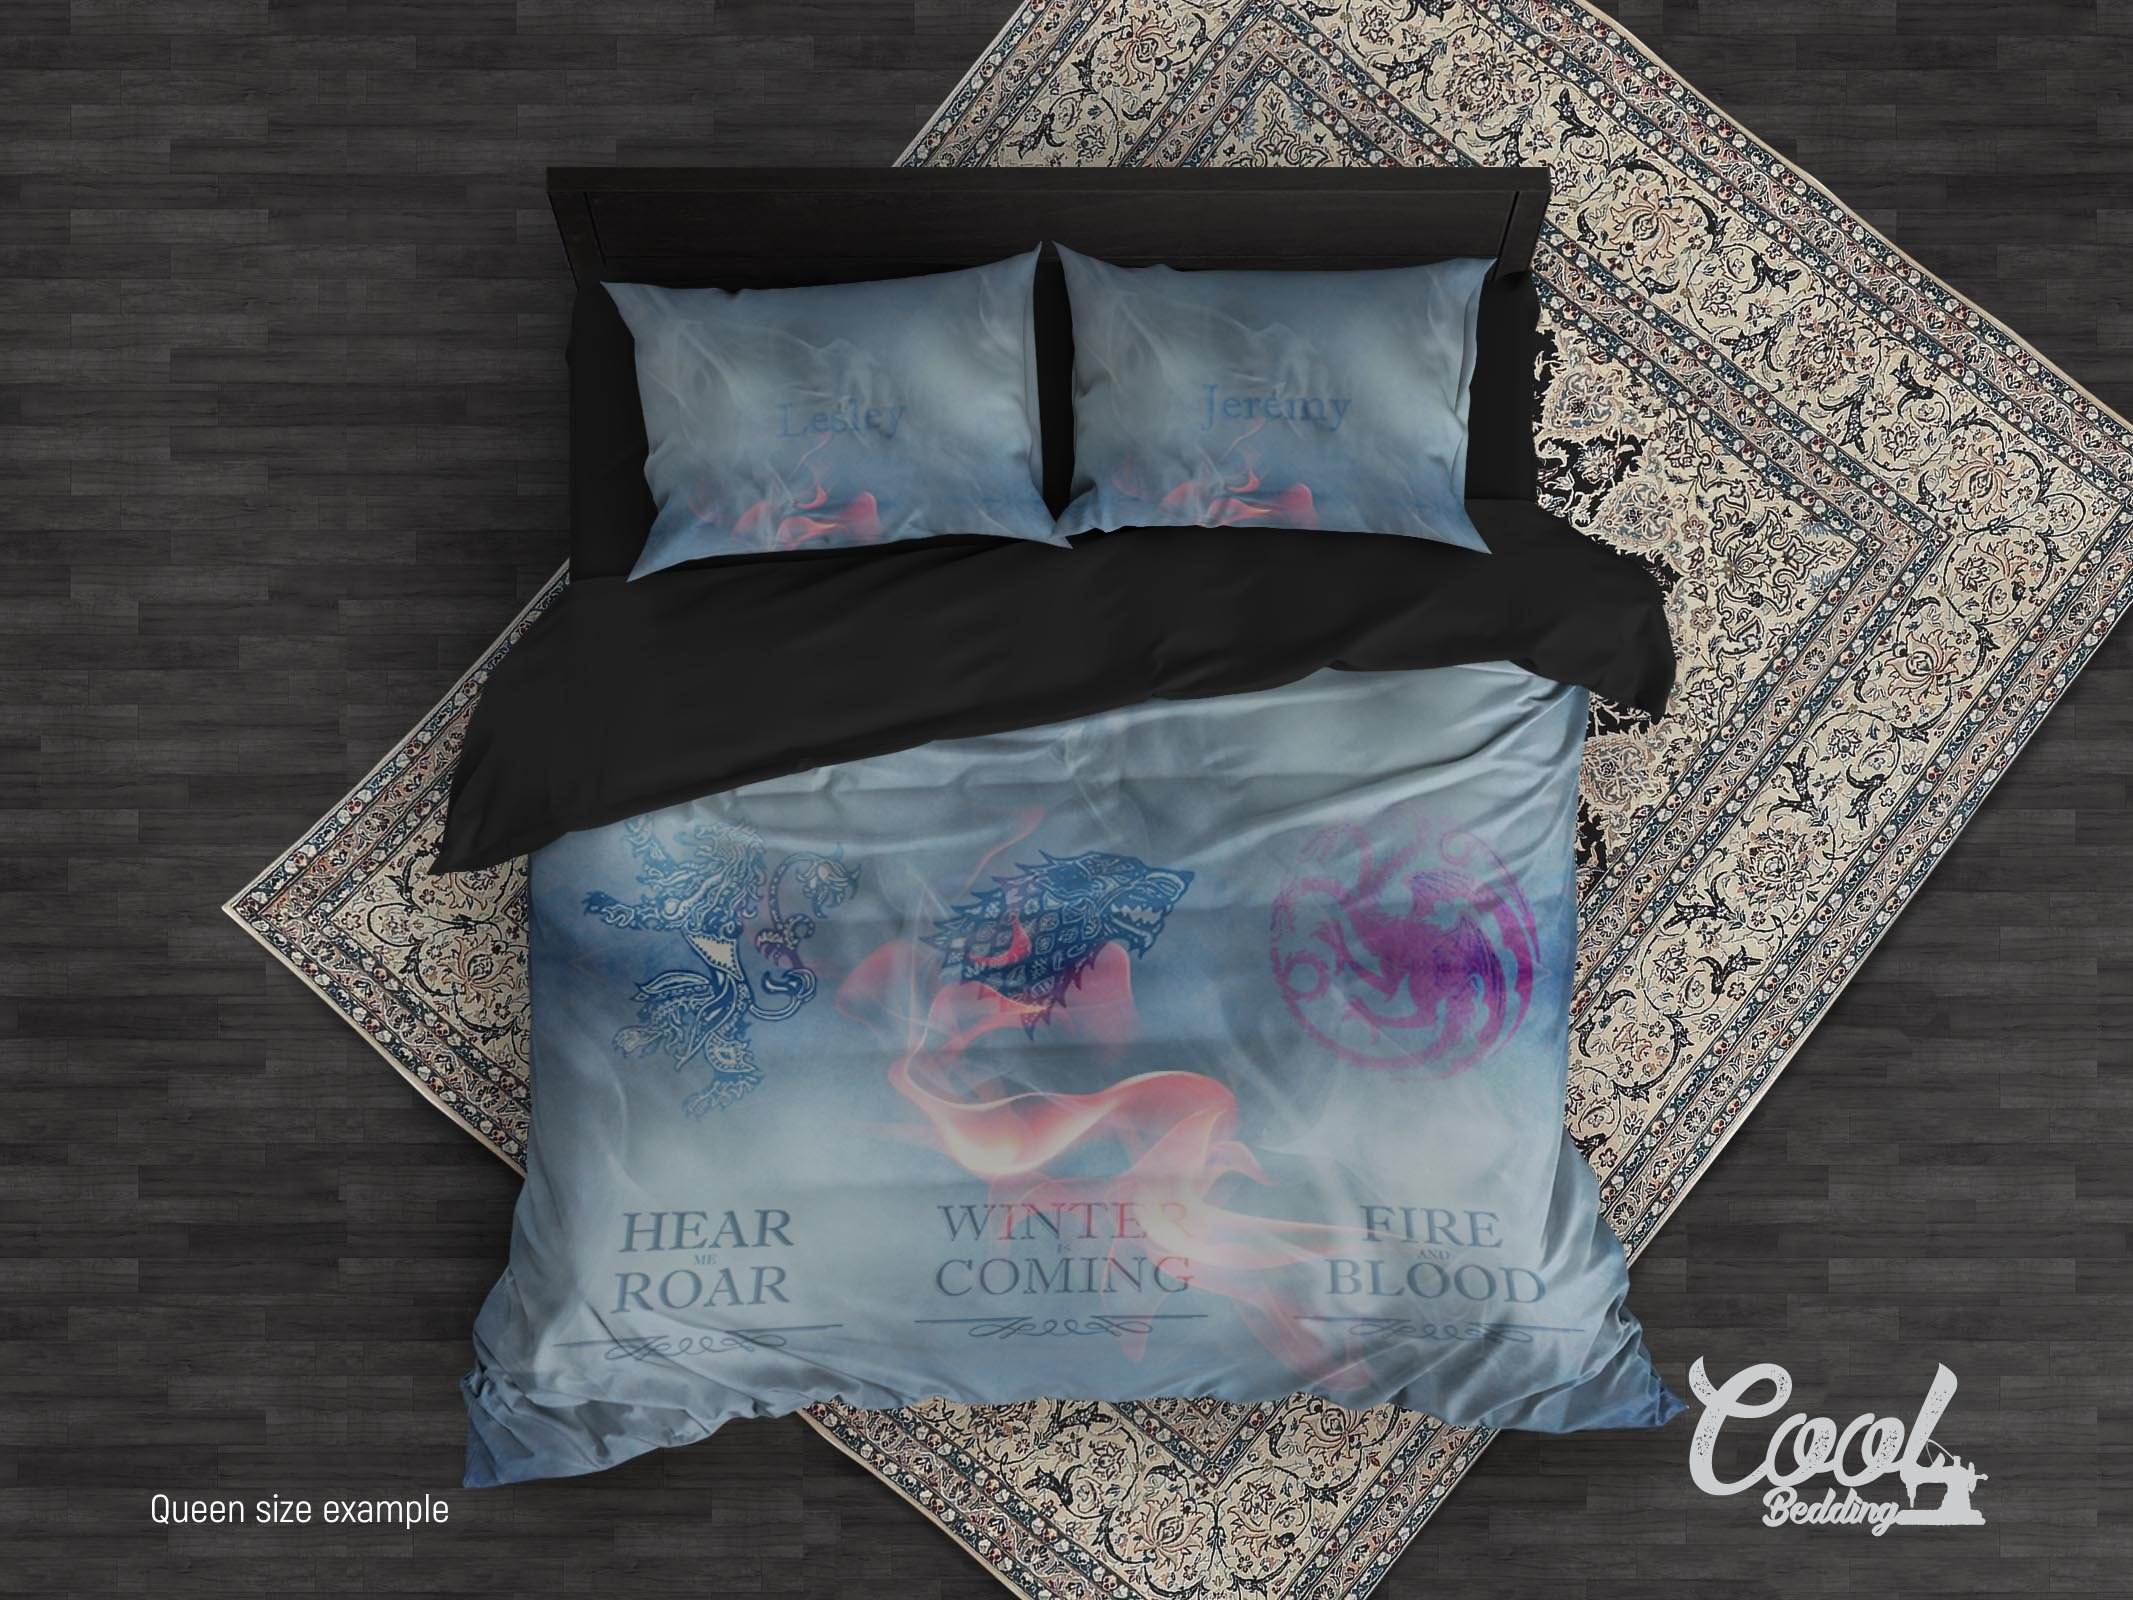 Game of Thrones Custom Personalized Duvet Cover by Cool Bedding, GOT Personalized Bedding set of 3 or 4 Pcs, King Queen Full Single Bedding Set. (Twin Set 68''x87'')